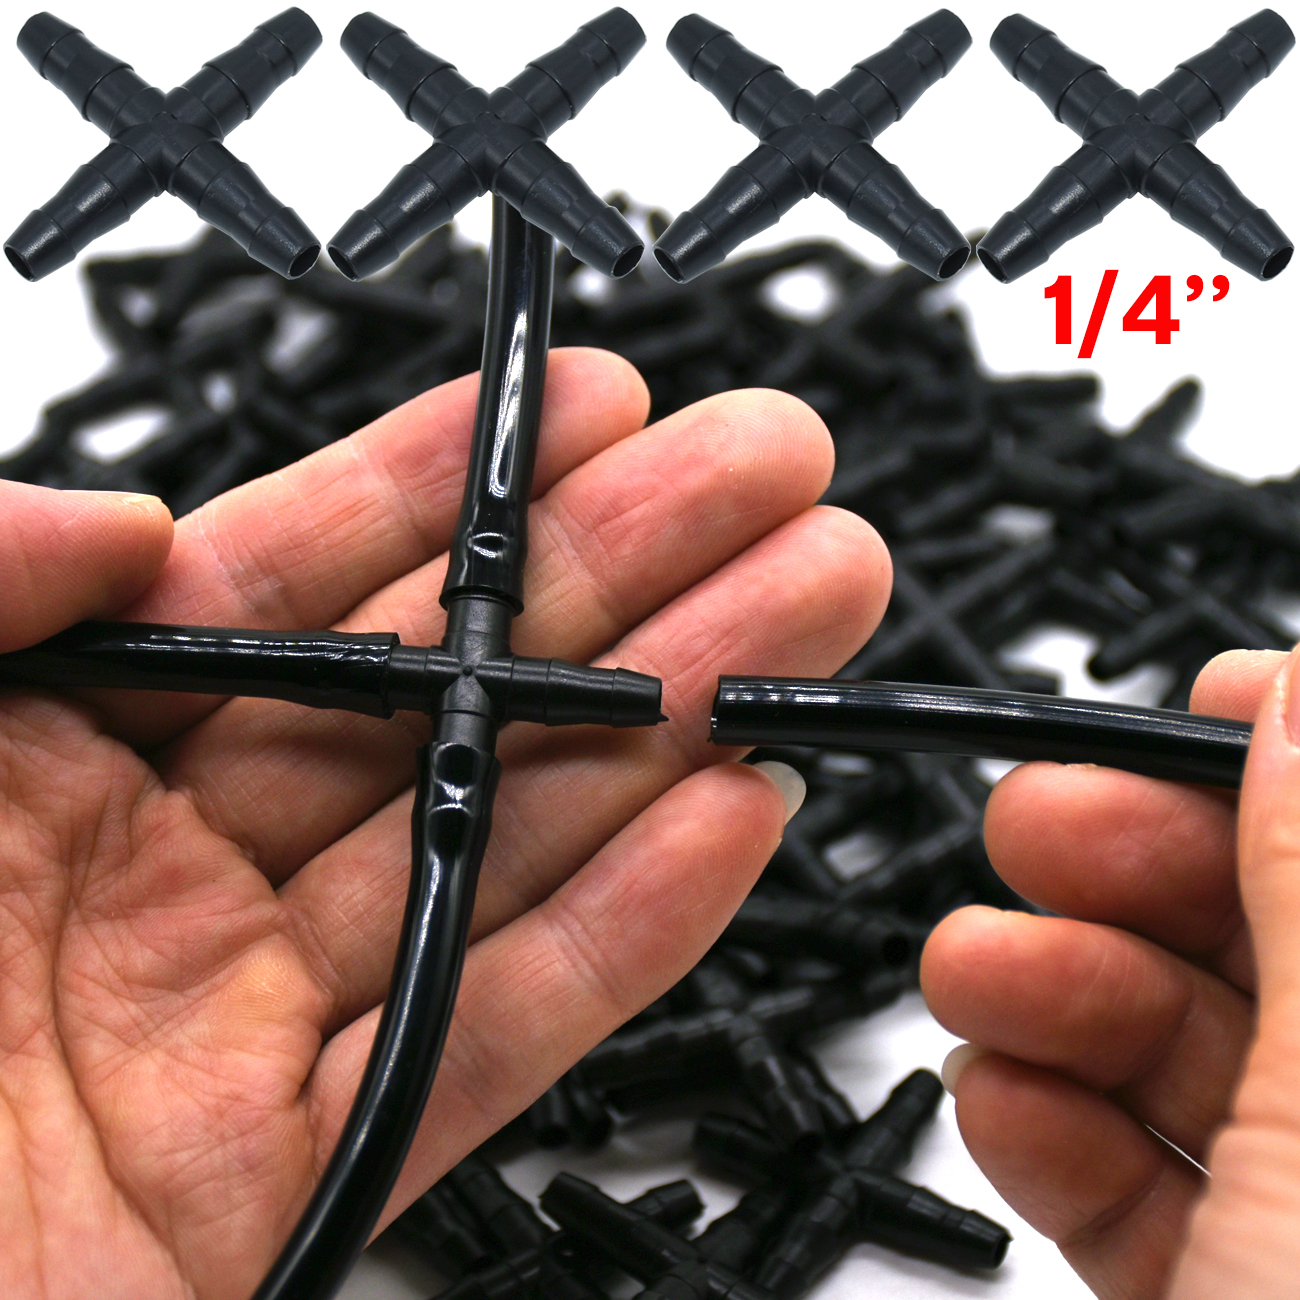 10PCS 1/4'' Cross Connecter For 4/7mm Micro Tubing Hose 4 Ways Barbed Adapter Drip Irrigation Cross Joint Connectors